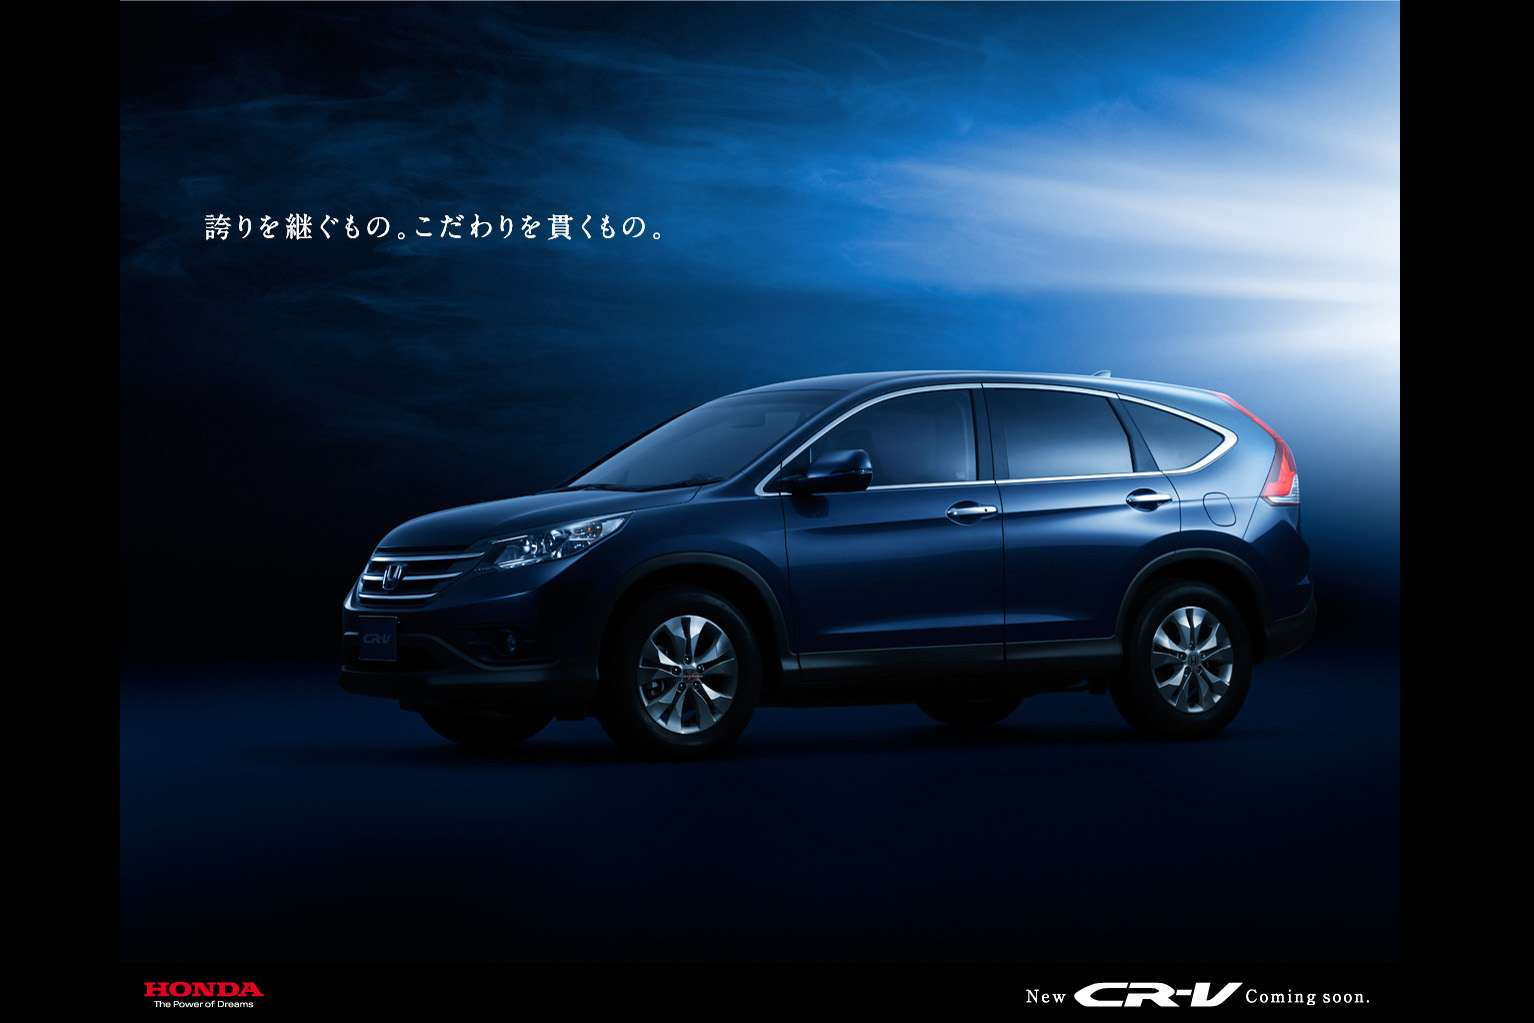 2012 Honda CR-V first photo pazdziernik 2011